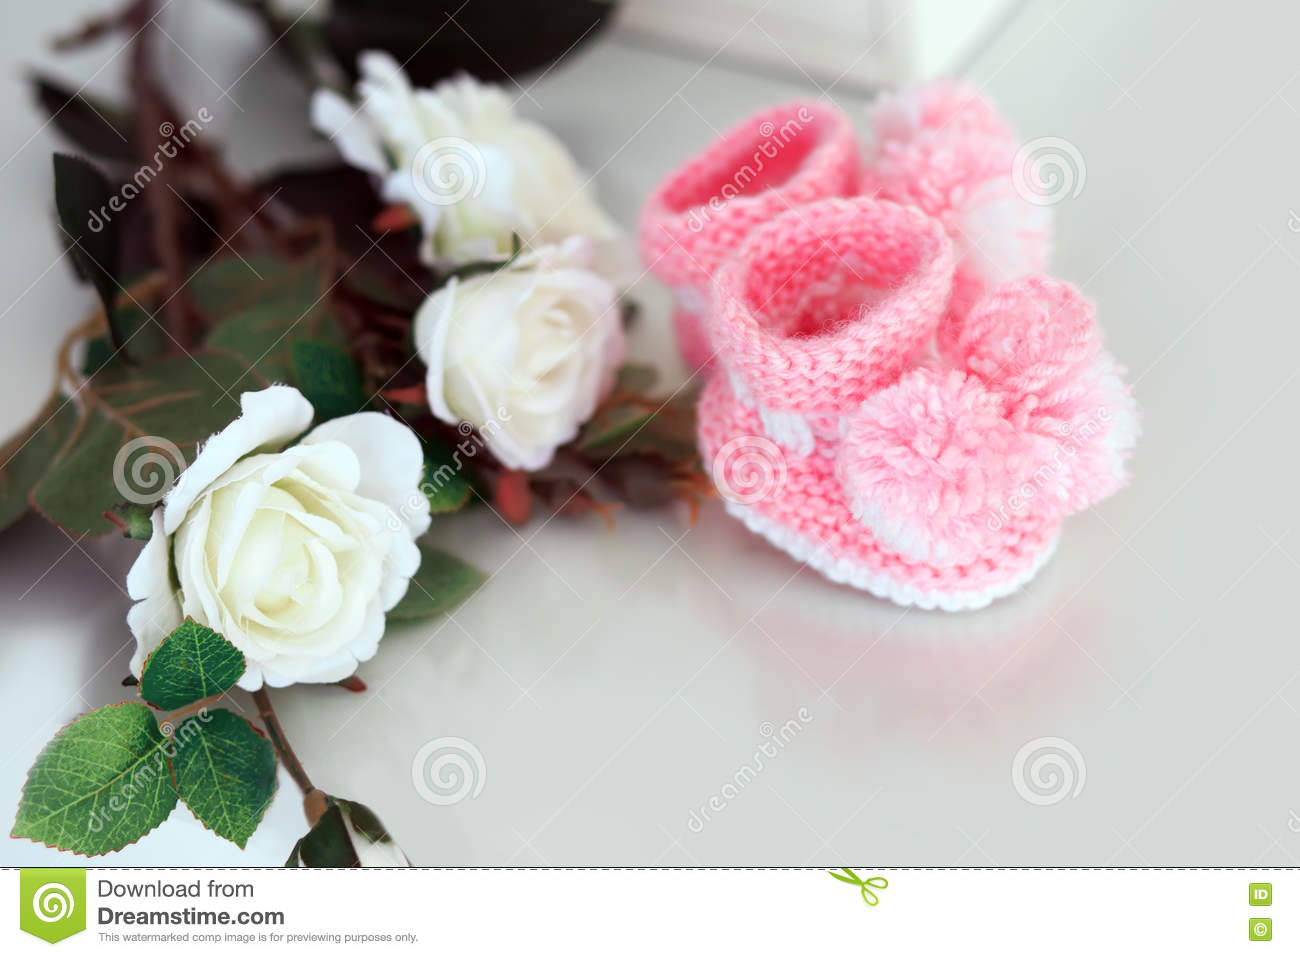 White Roses. Knitted Baby Shoes. Stock